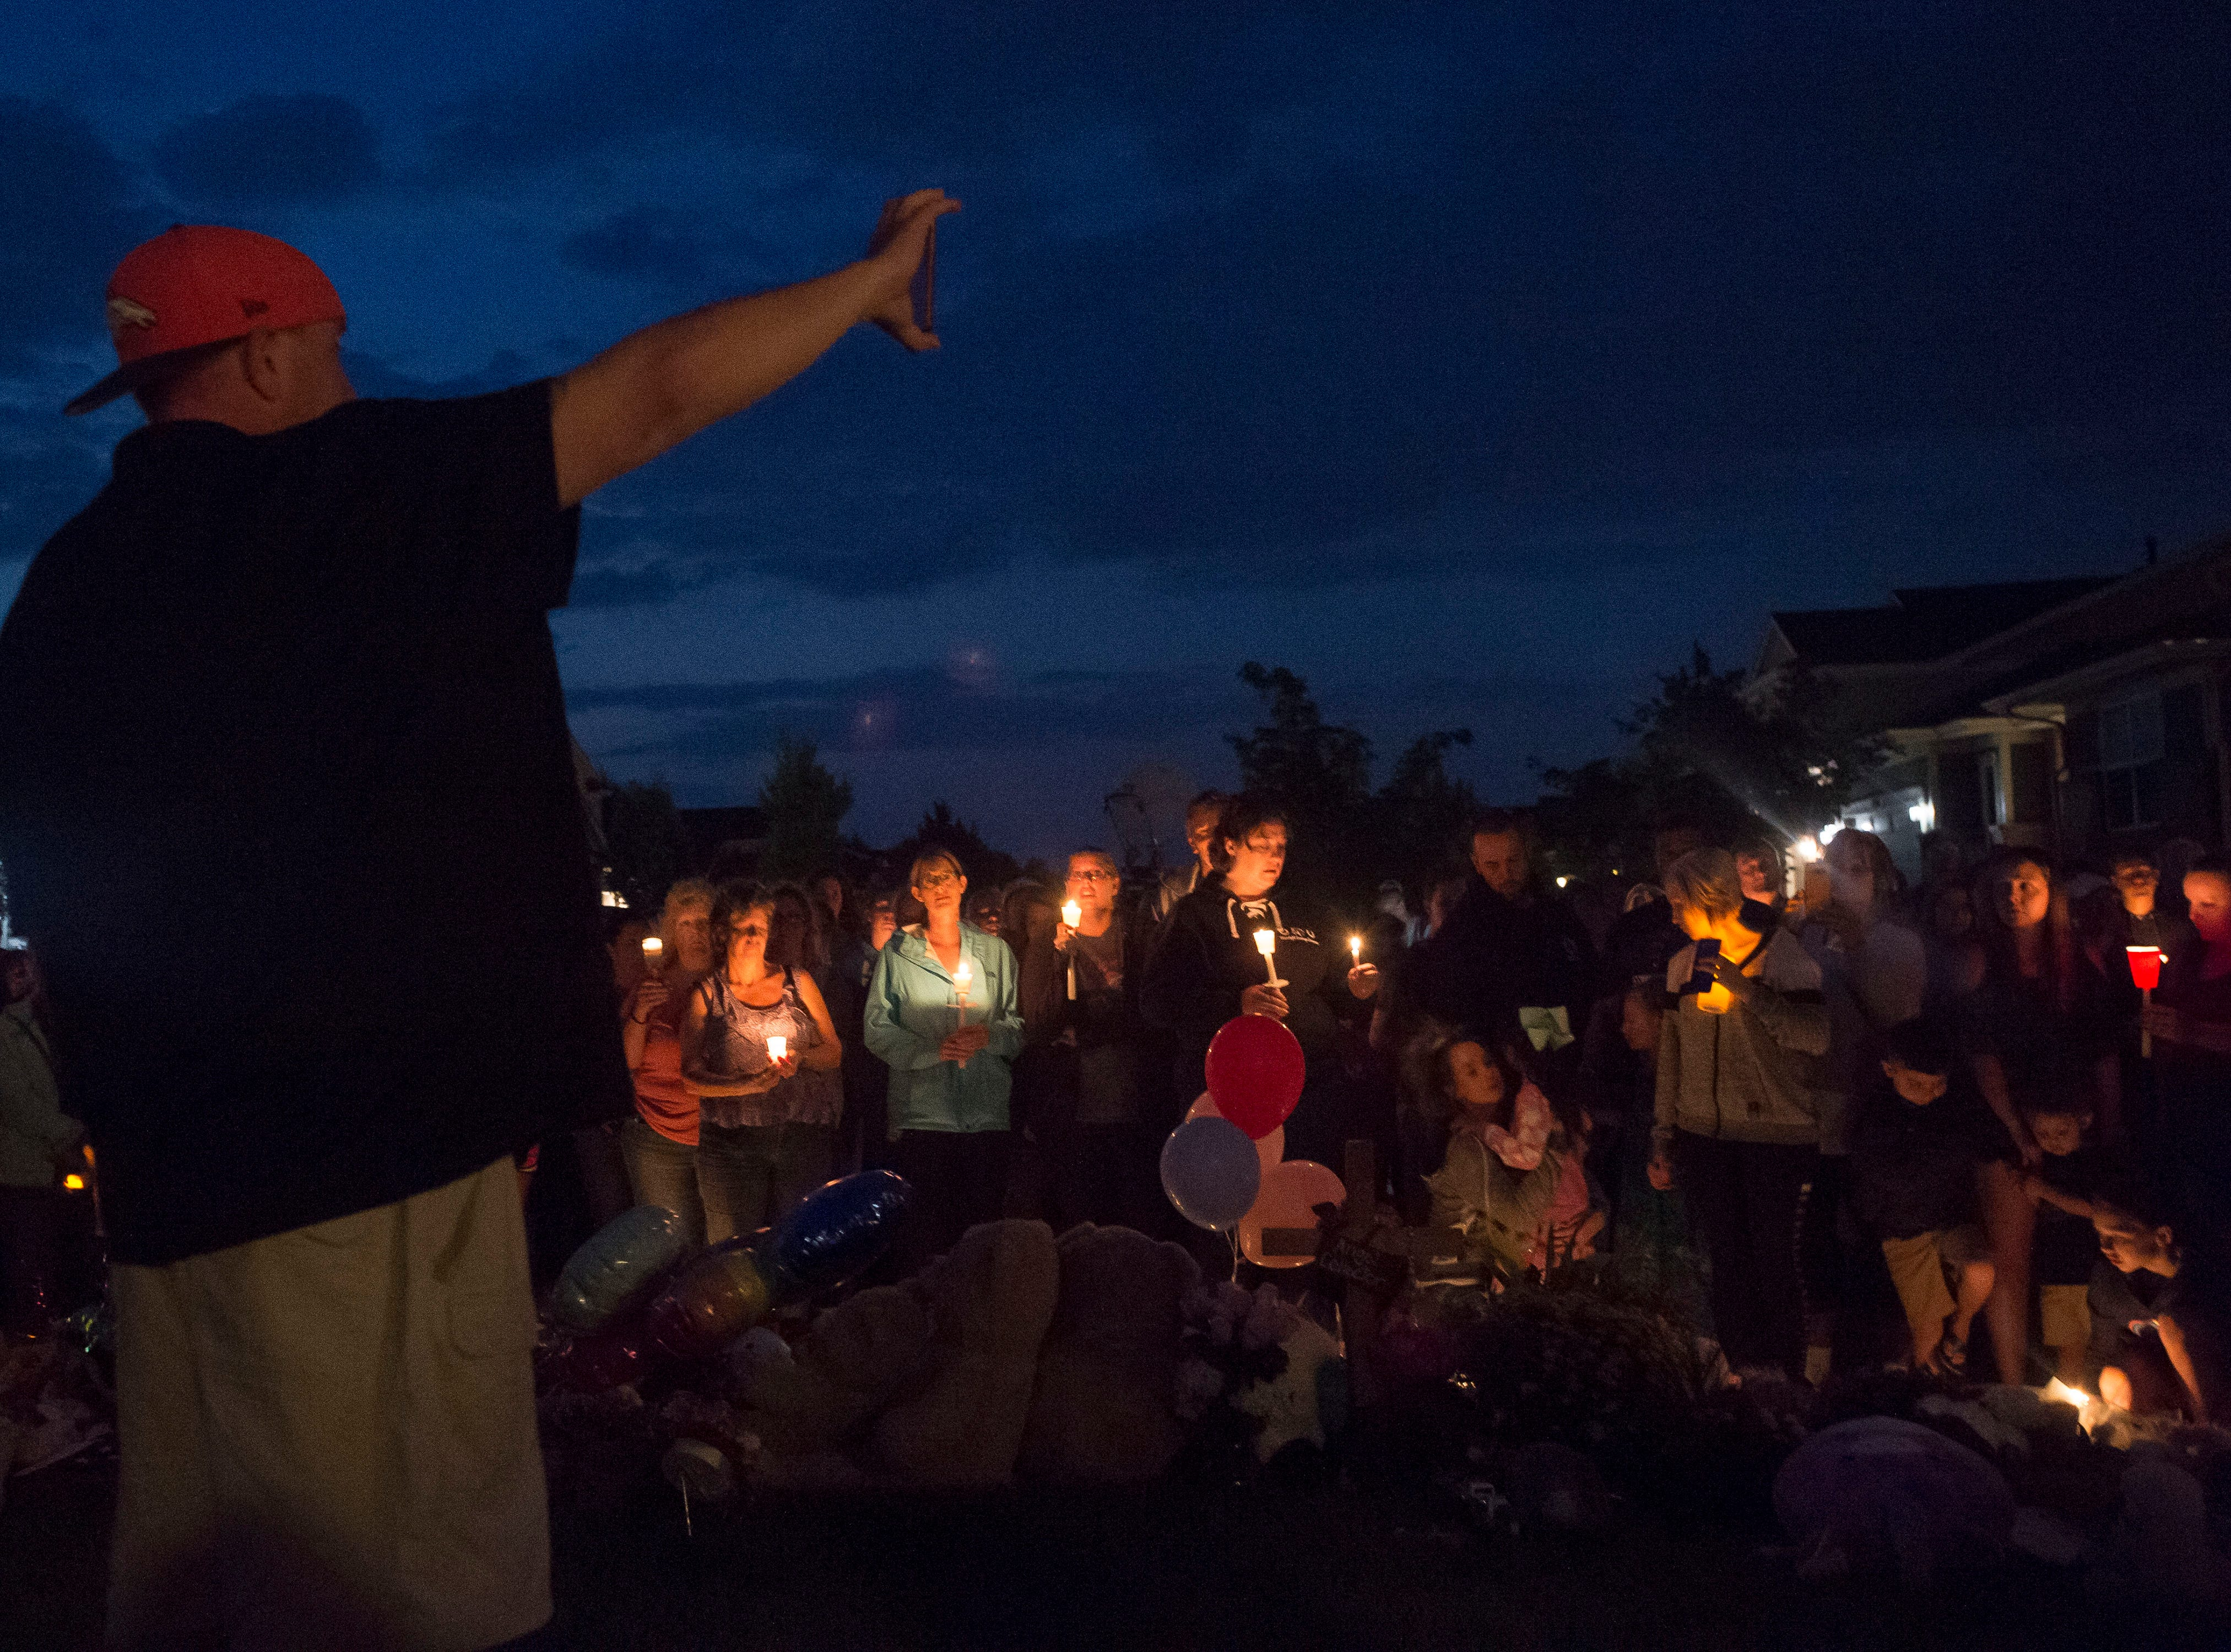 A neighbor holds a phone up to the crowd while live-streaming to Shannon Watts' parents to let them see the local outpouring of support during a candle-lit vigil for the slain Shanann Watts and her two daughters, Bella, 4, and Celeste, 3, in front of the Watts' family home on Friday, Aug. 17, 2018, in Frederick, Colo.